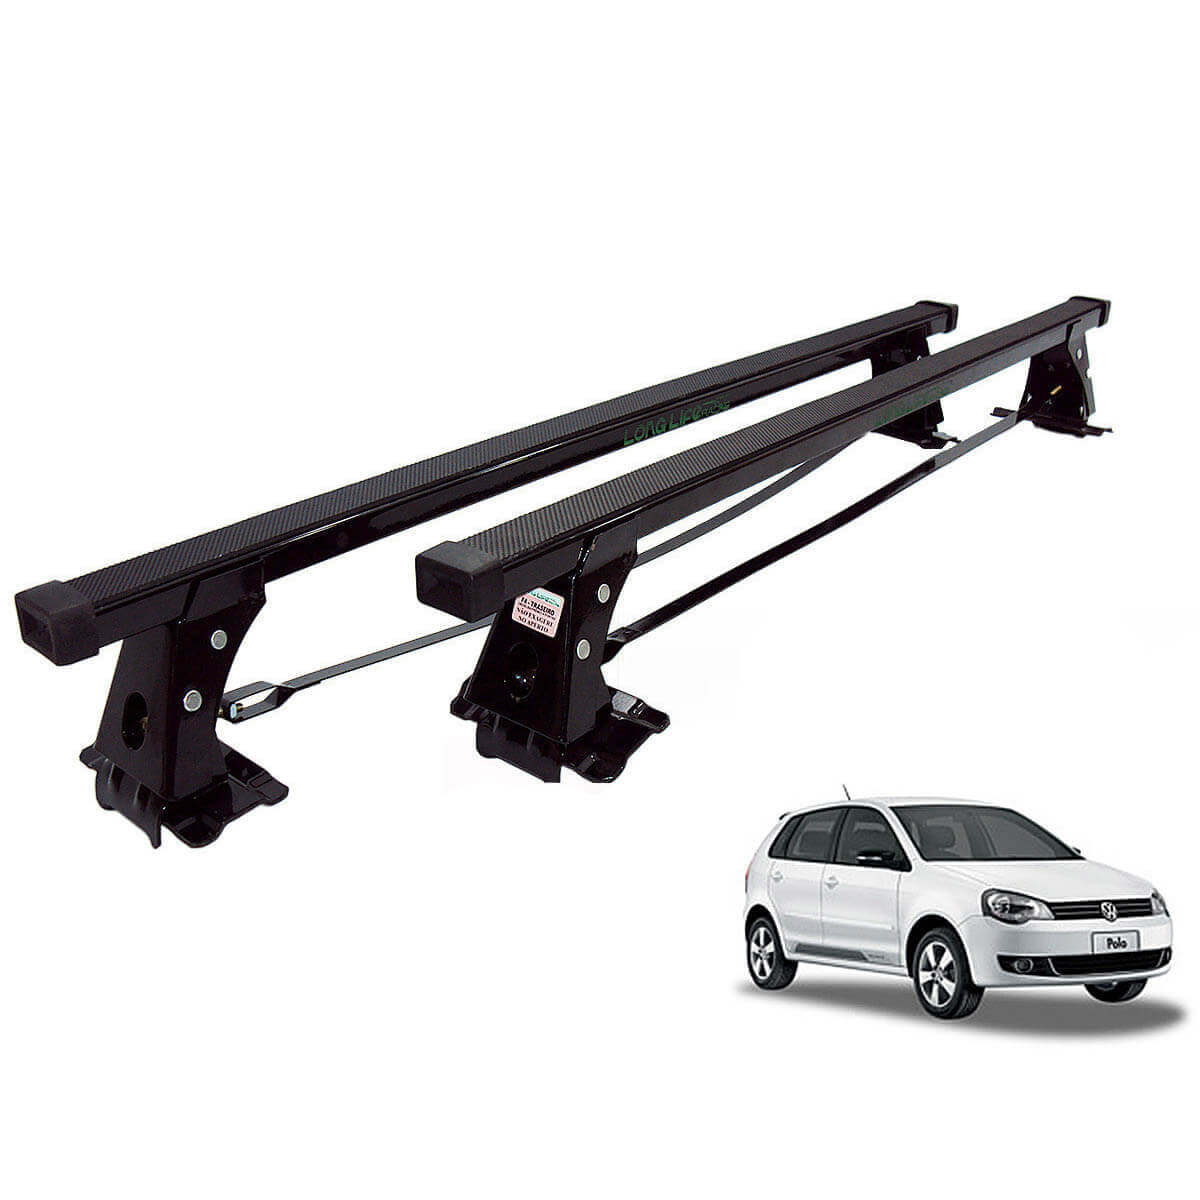 Rack de teto Long Life Aço Polo hatch ou sedan 2003 a 2015